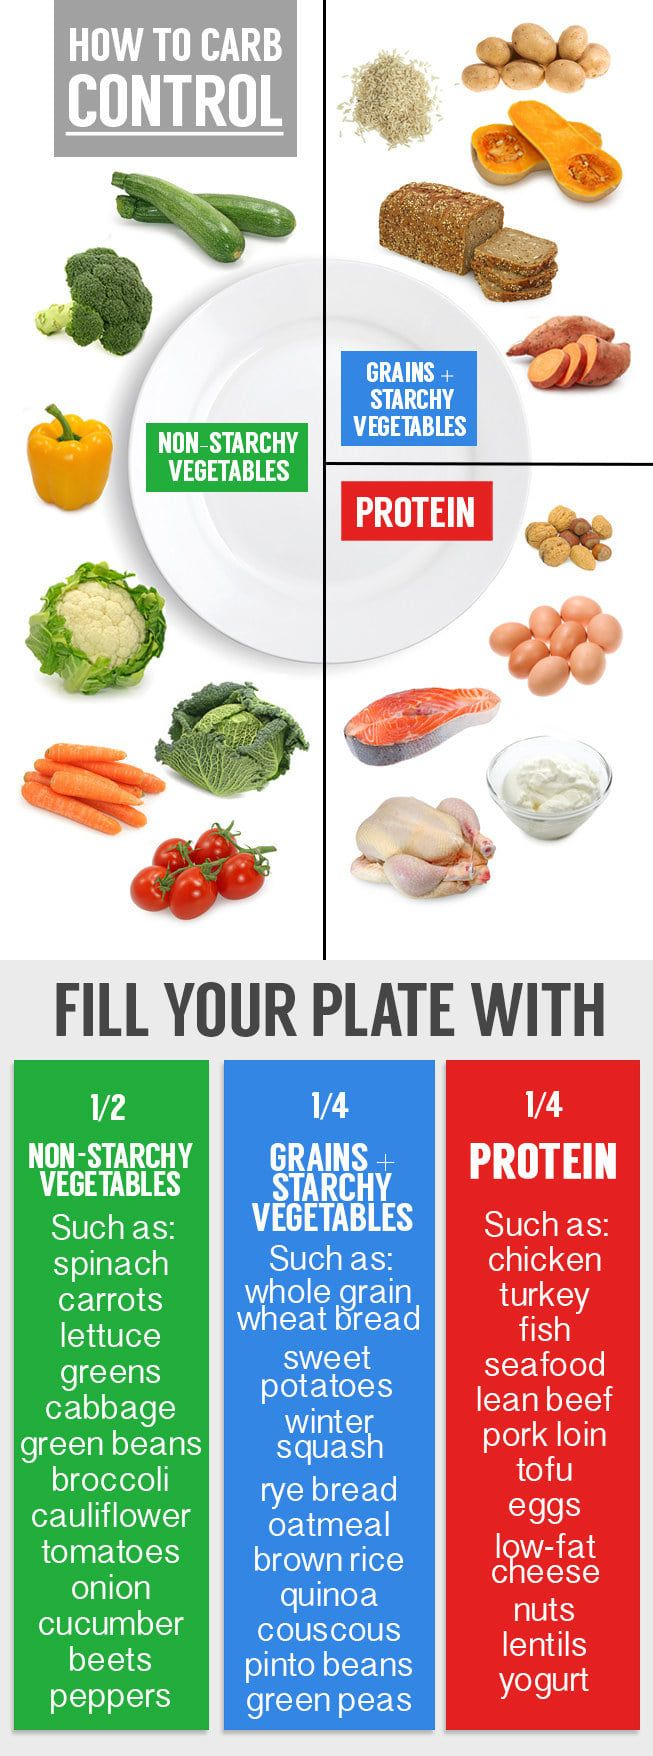 Based on the Create Your Plate healthy eating guideline recommended by the American Diabetes Association.